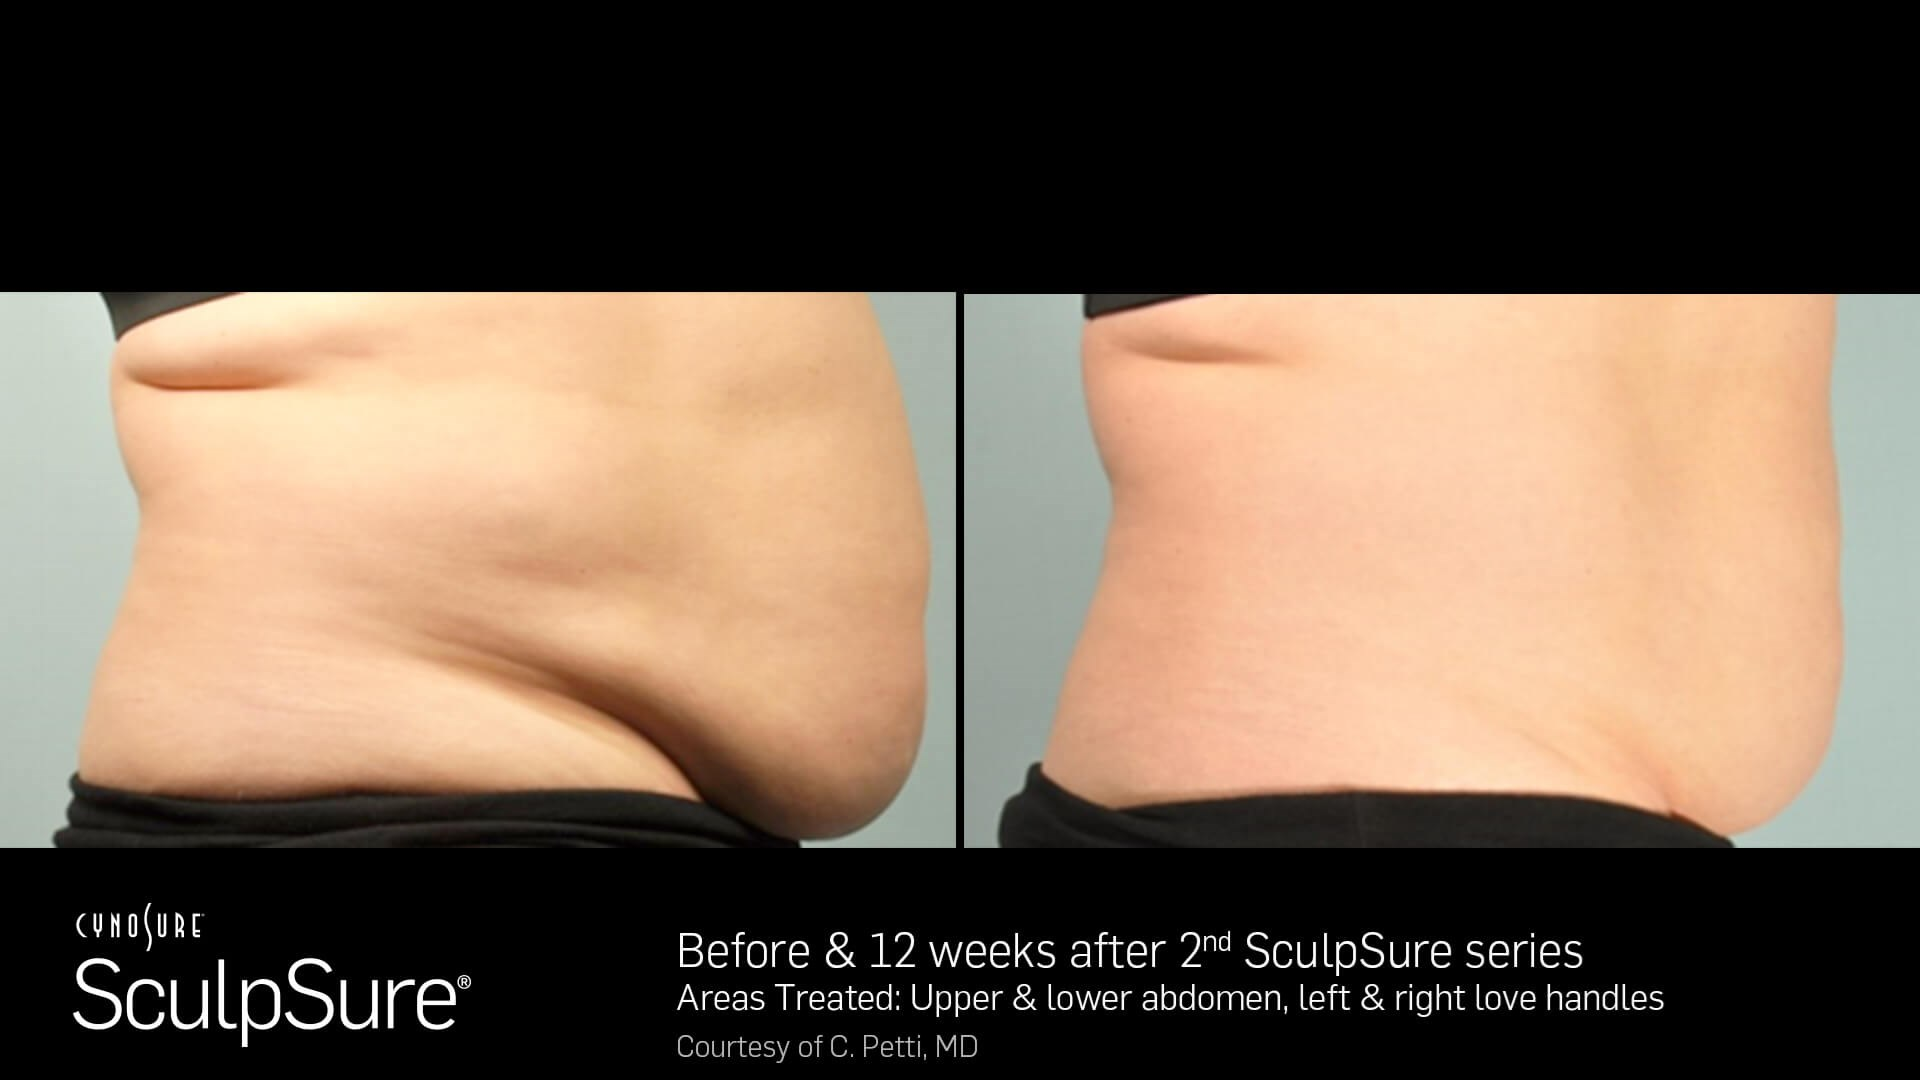 SculpSure Tummy & lovehandles Before